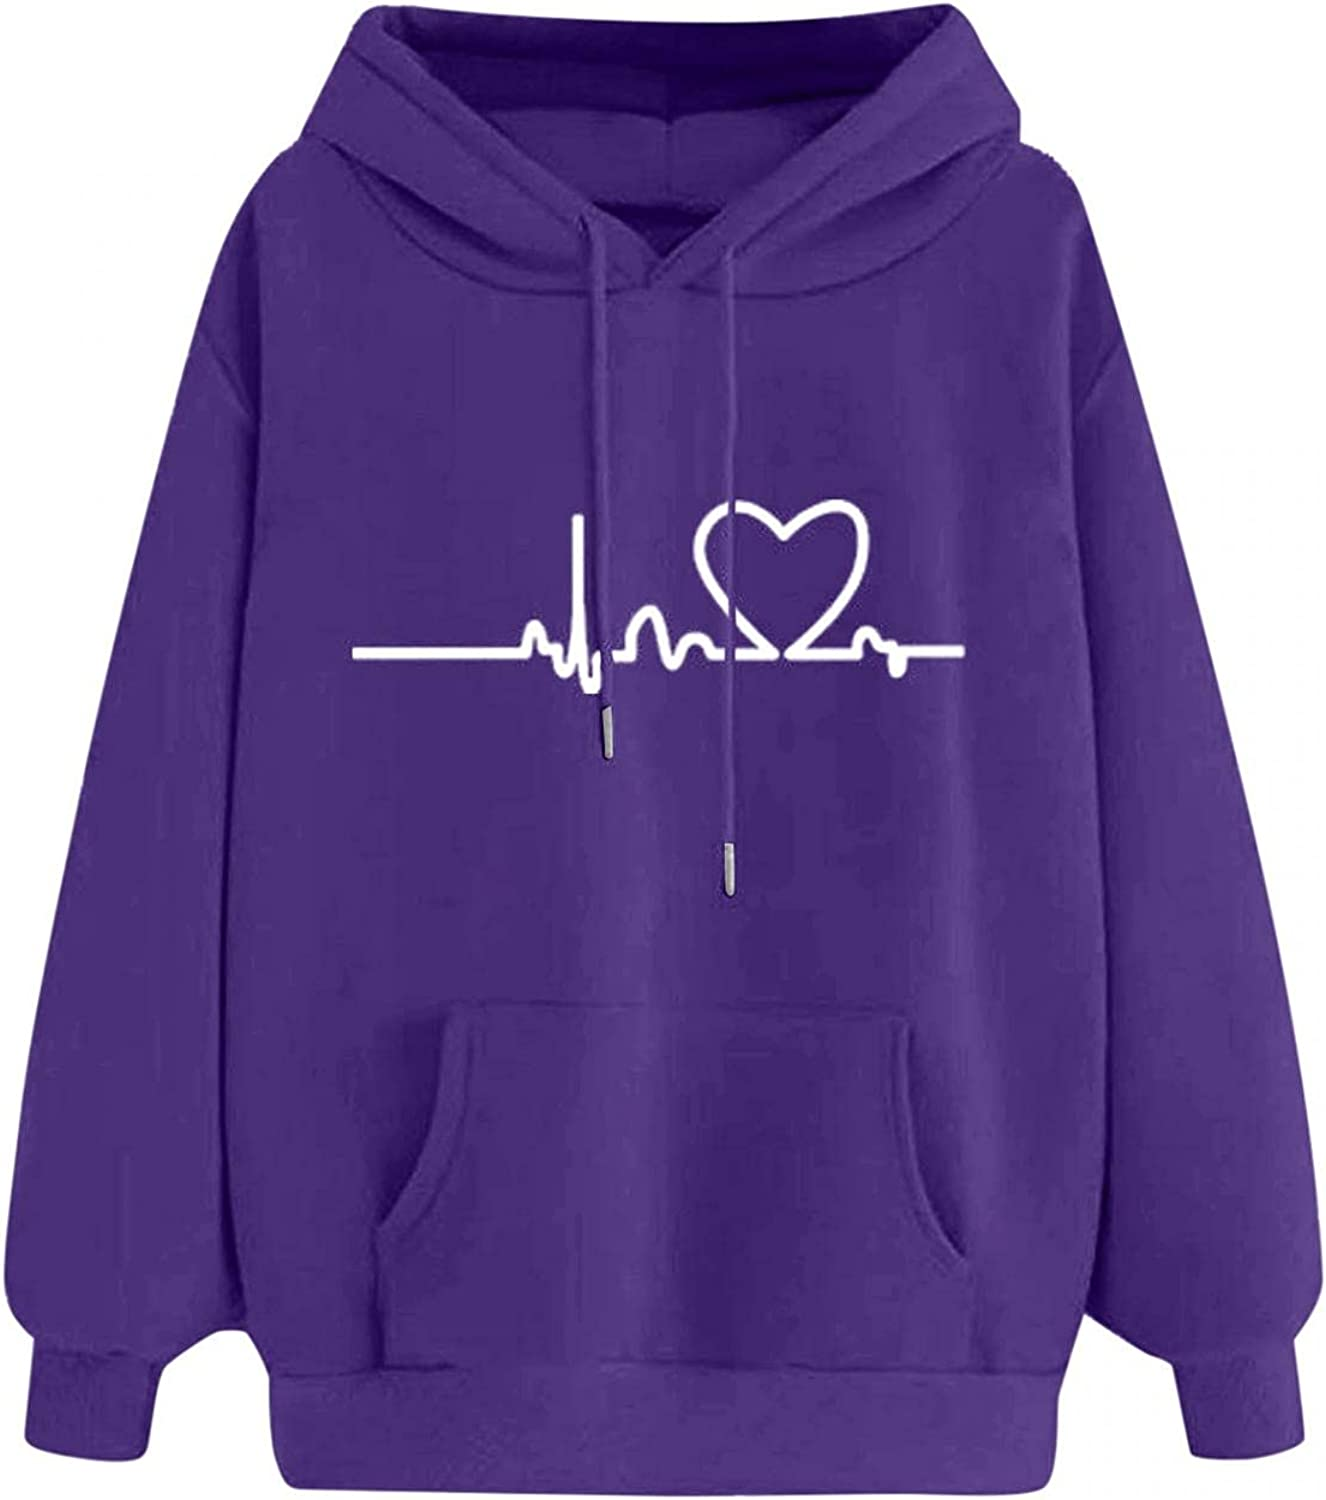 Jaqqra Hoodies for Women Pullover Long Sleeve Solid Color Printed Hooded Sweatshirts Teen Girls Casual Loose Tops Shirts